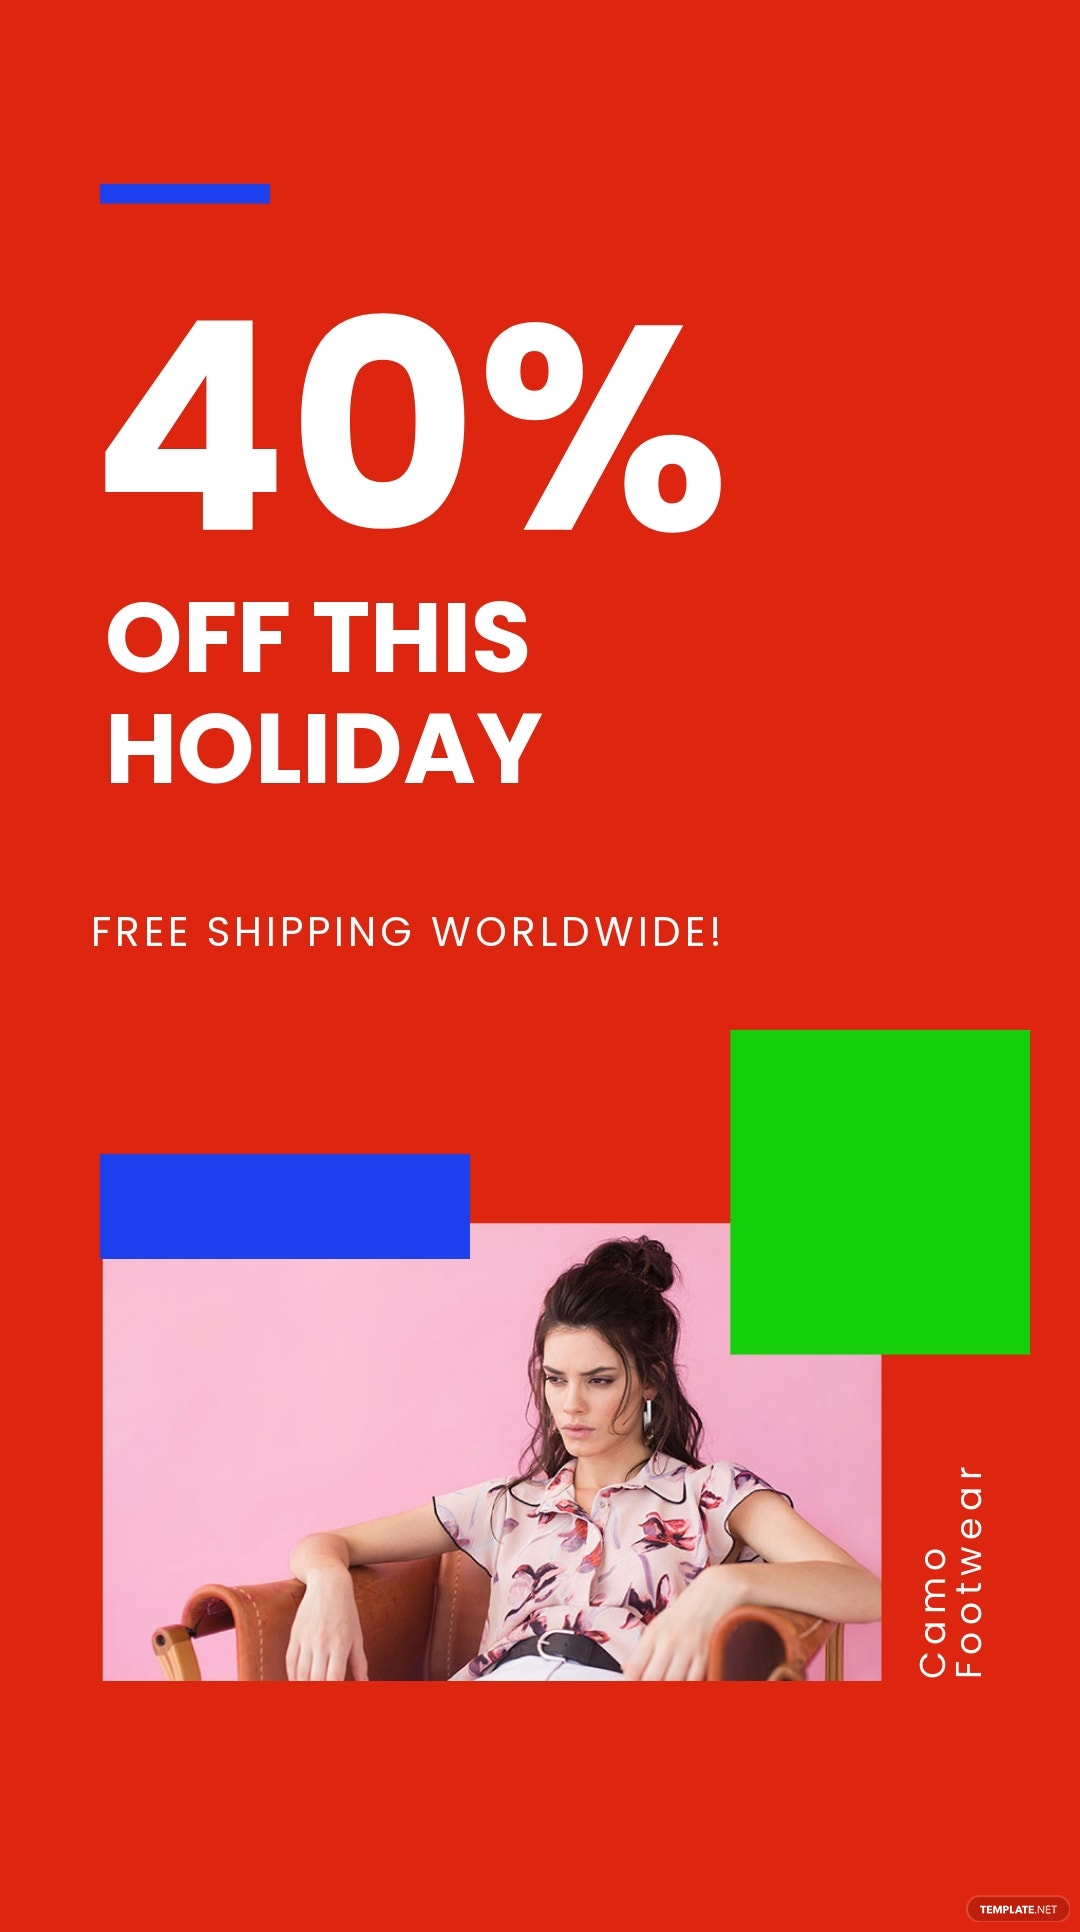 Holiday Offer Sale Instagram Story Template